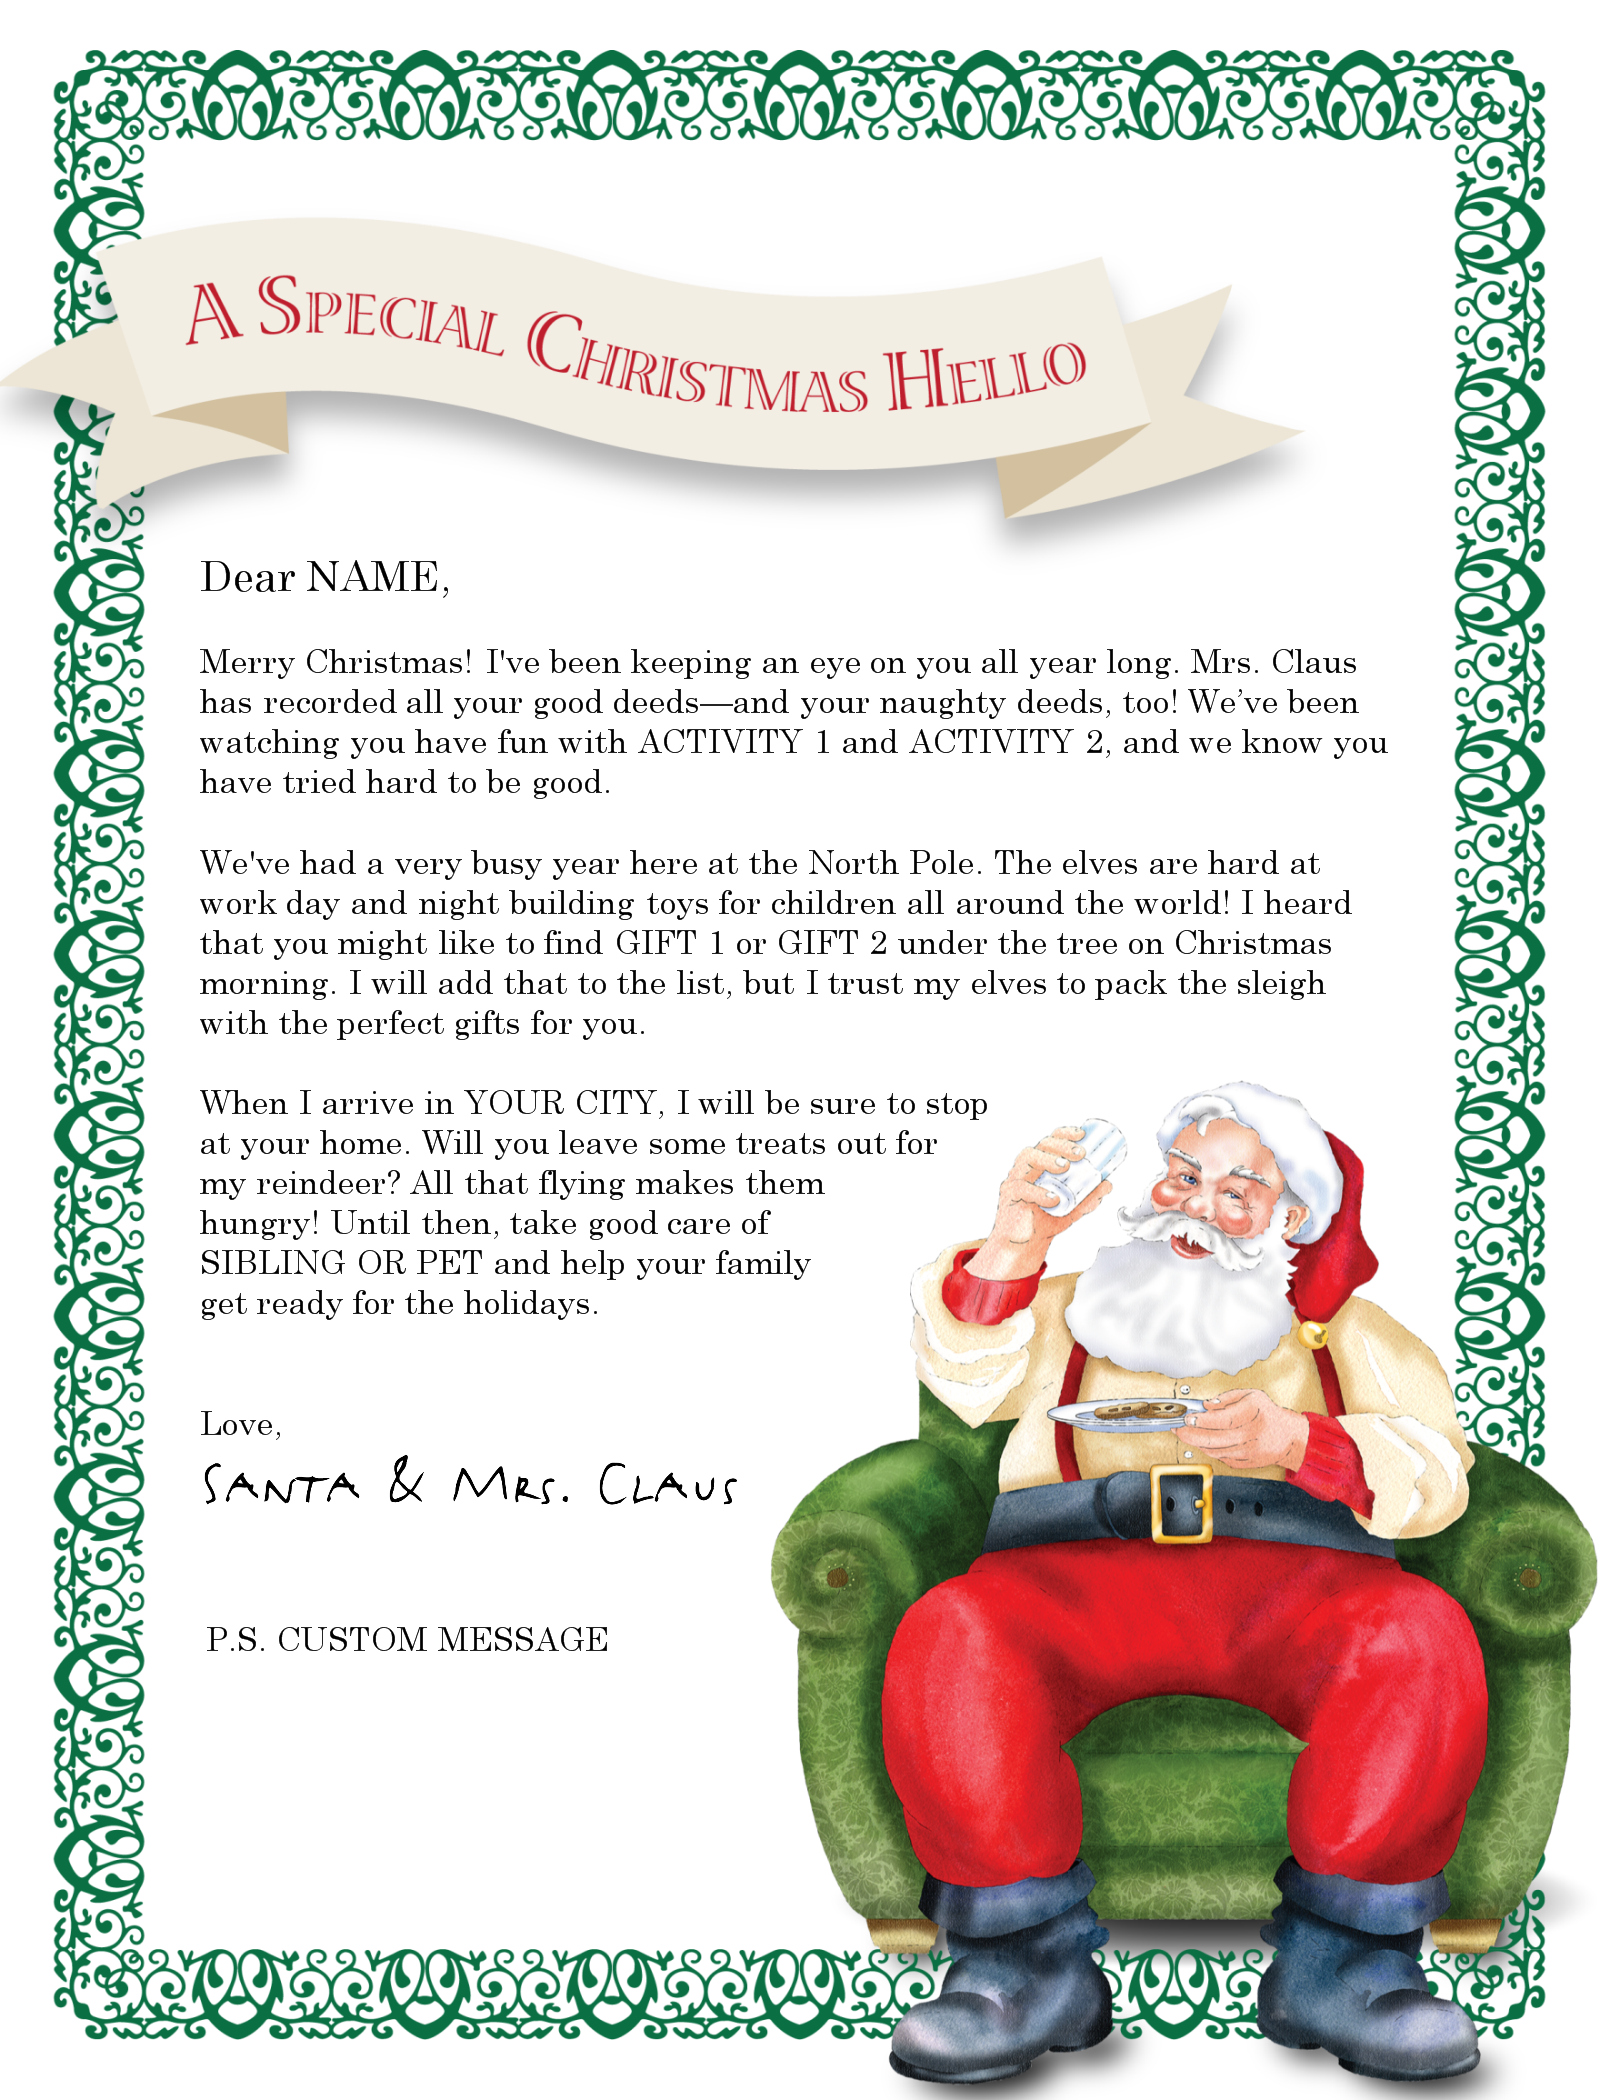 Lovely Explore Santa Letter, Letter From Santa Template, And More!